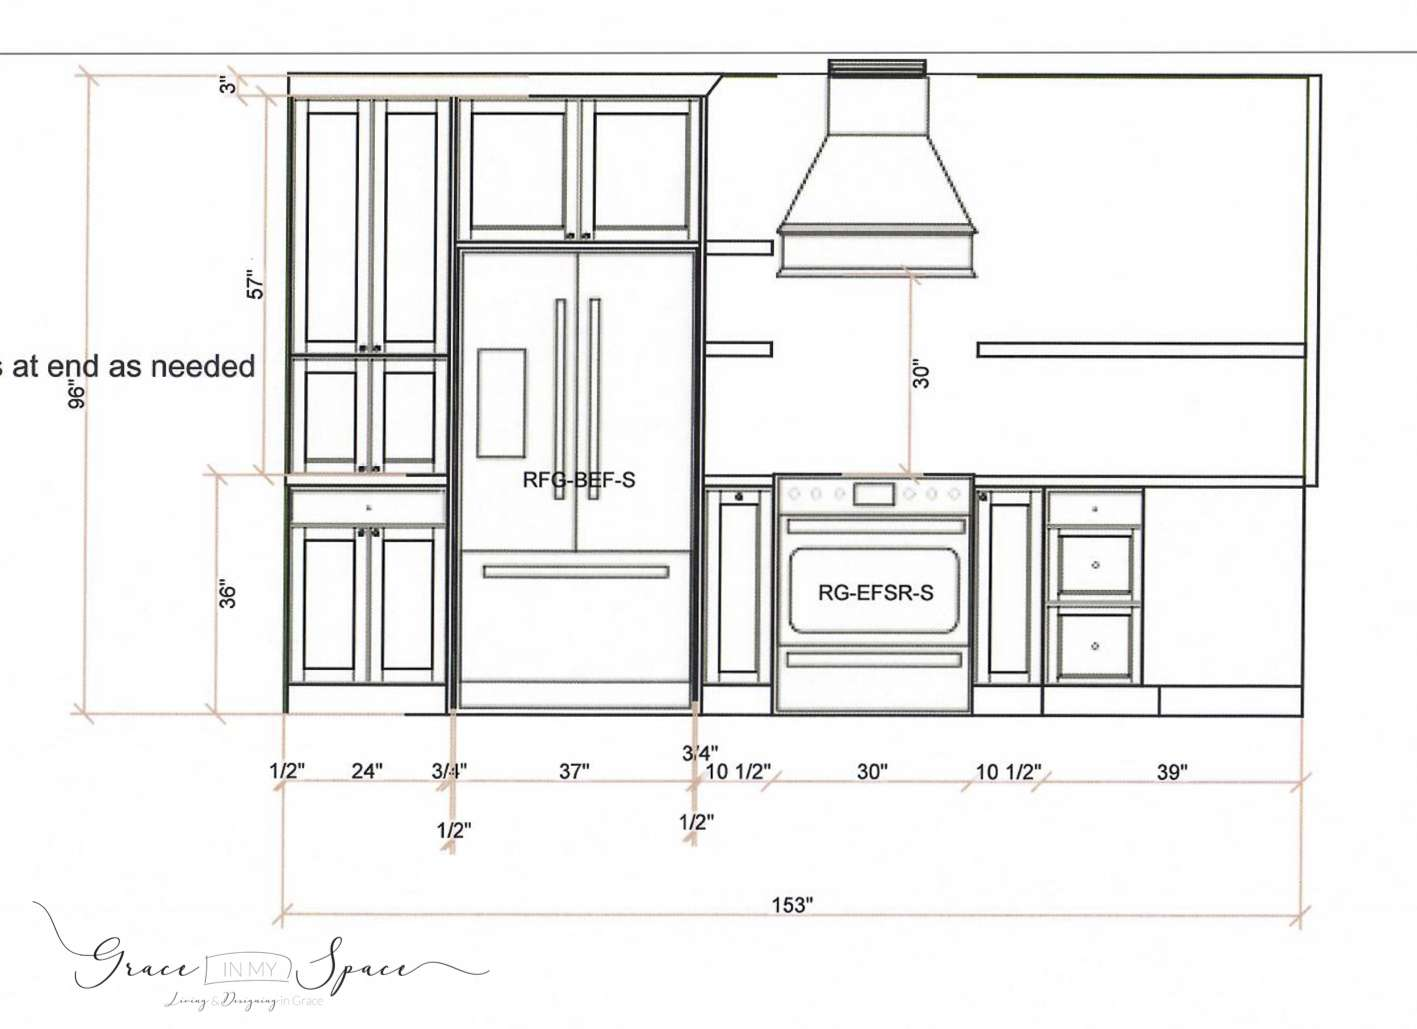 Are you designing a custom kitchen? Today I'm sharing my custom kitchen design plan to help you take first steps in the planning process. #fromhousetohaven #kitchendesign #customkitchen